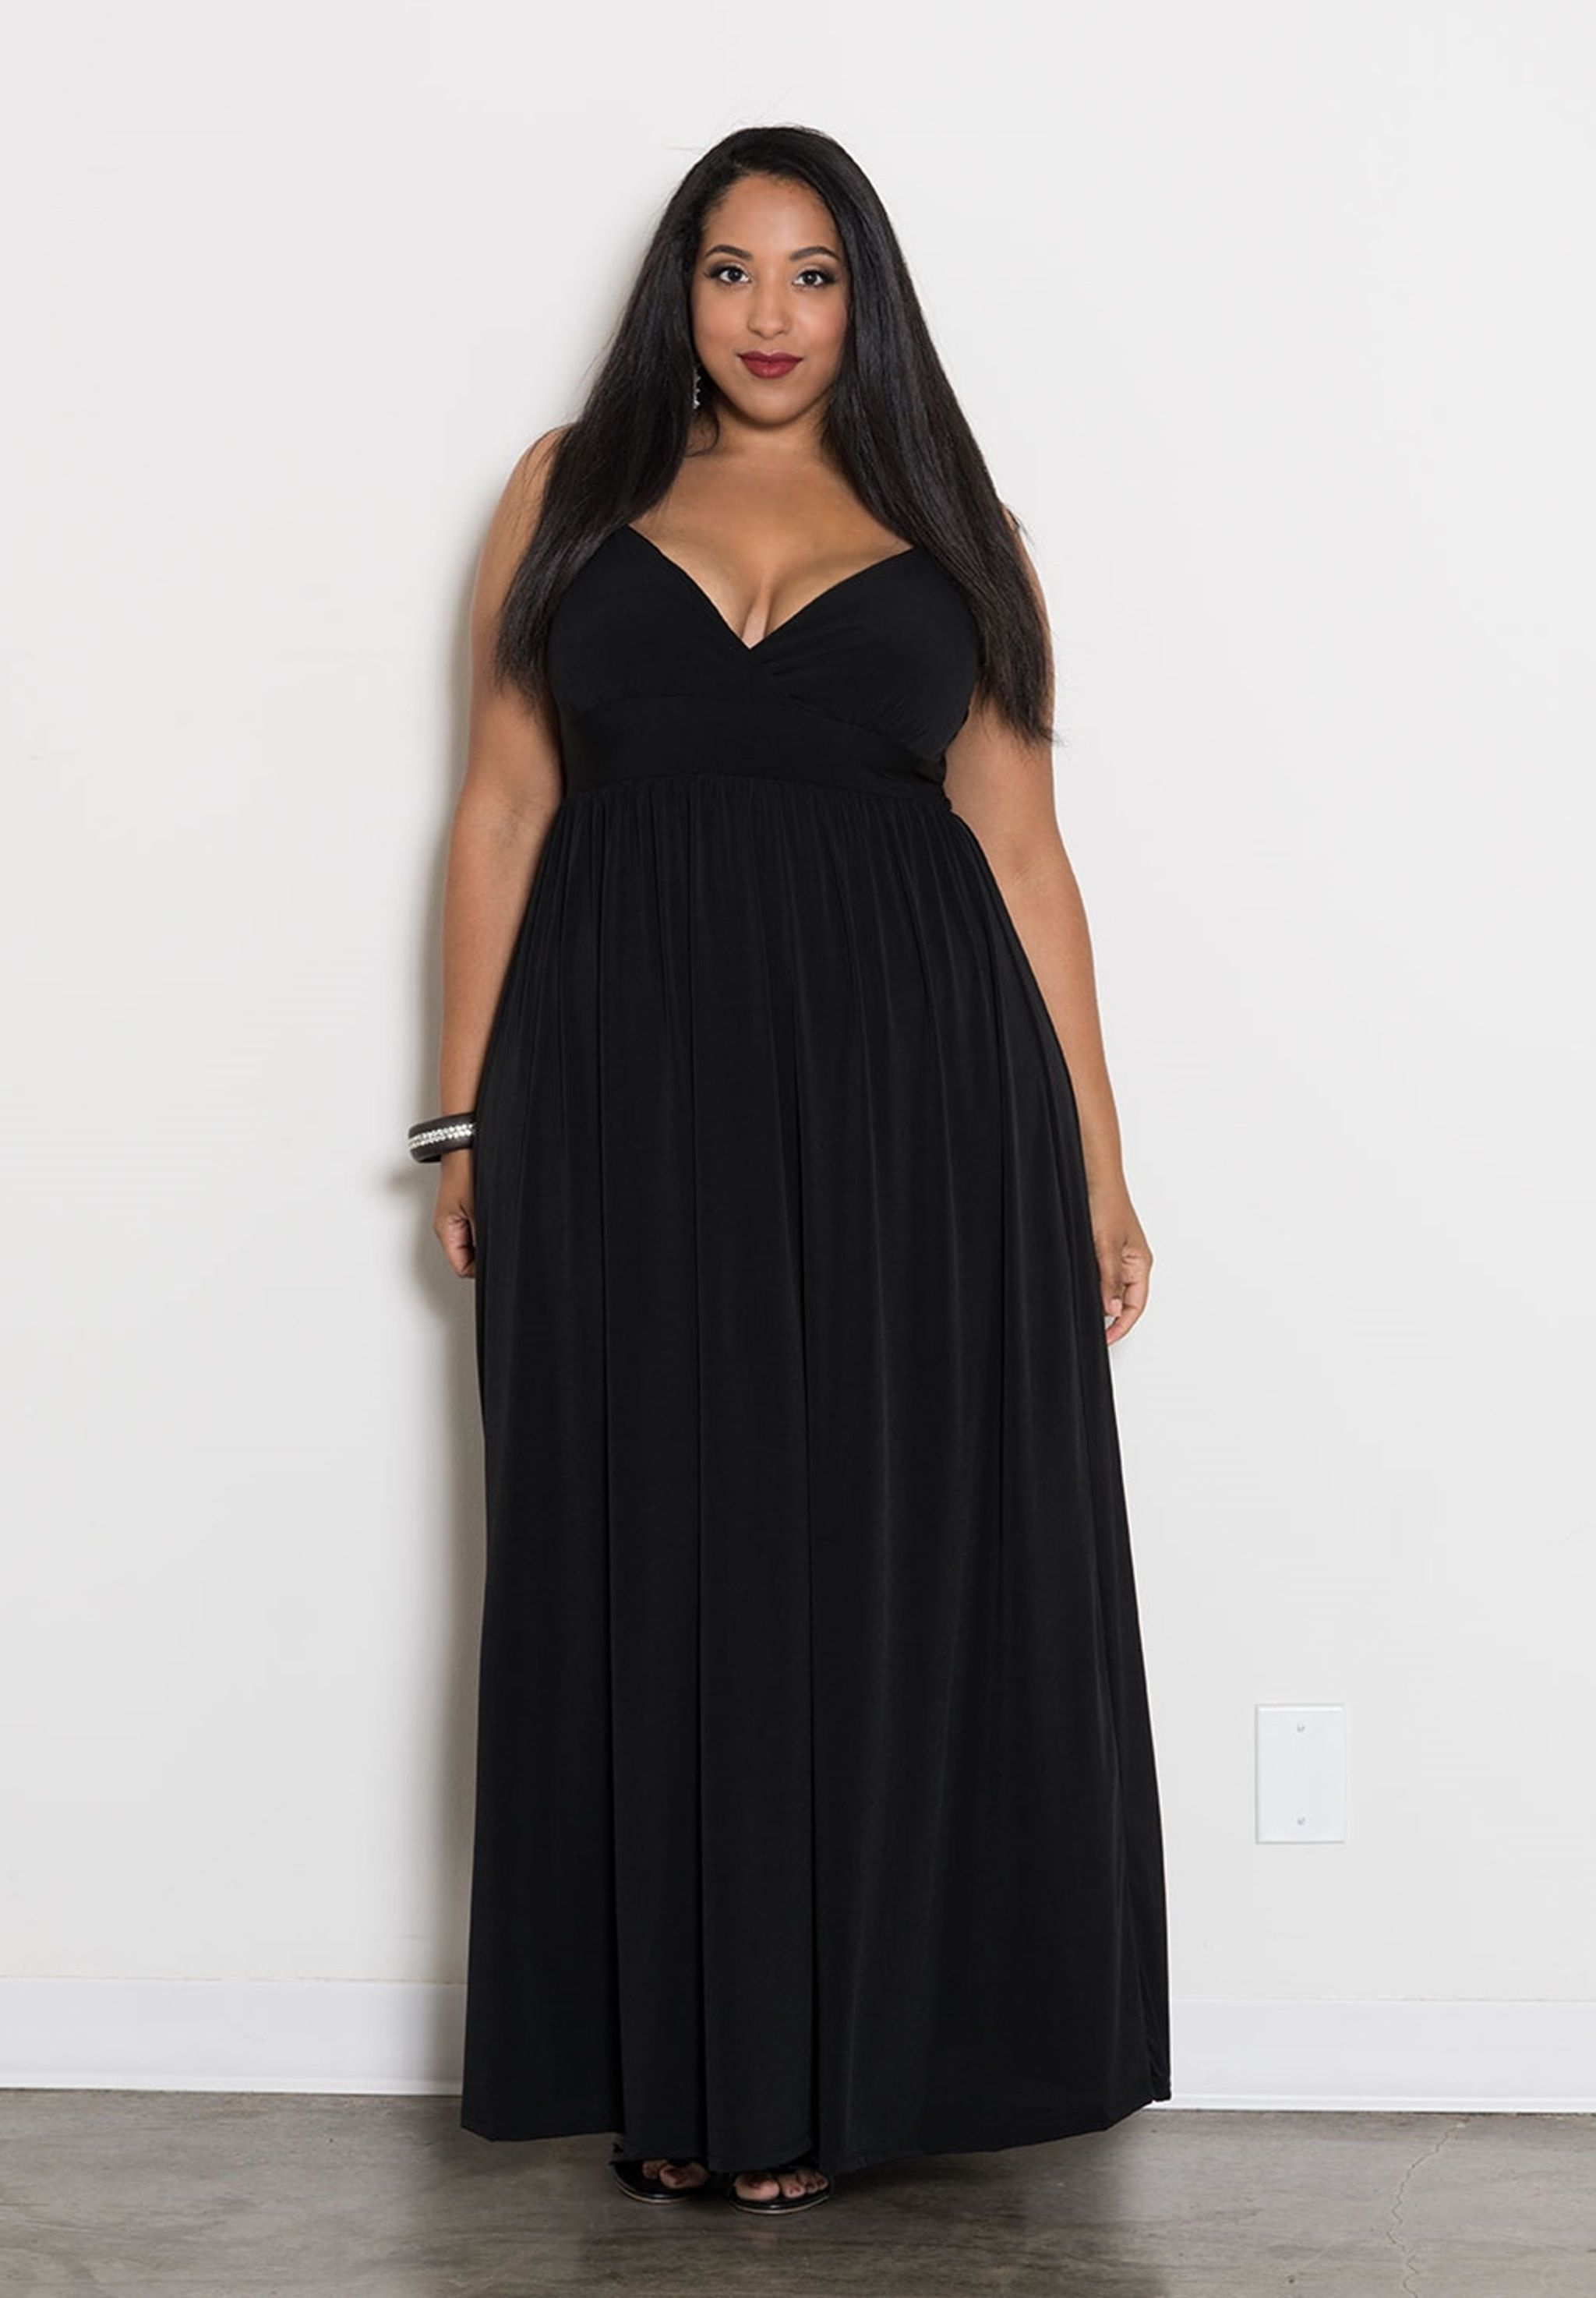 58ff488972376 THE FACTS - SIZING - FREE SHIPPING + RETURNS A classic spaghetti ...